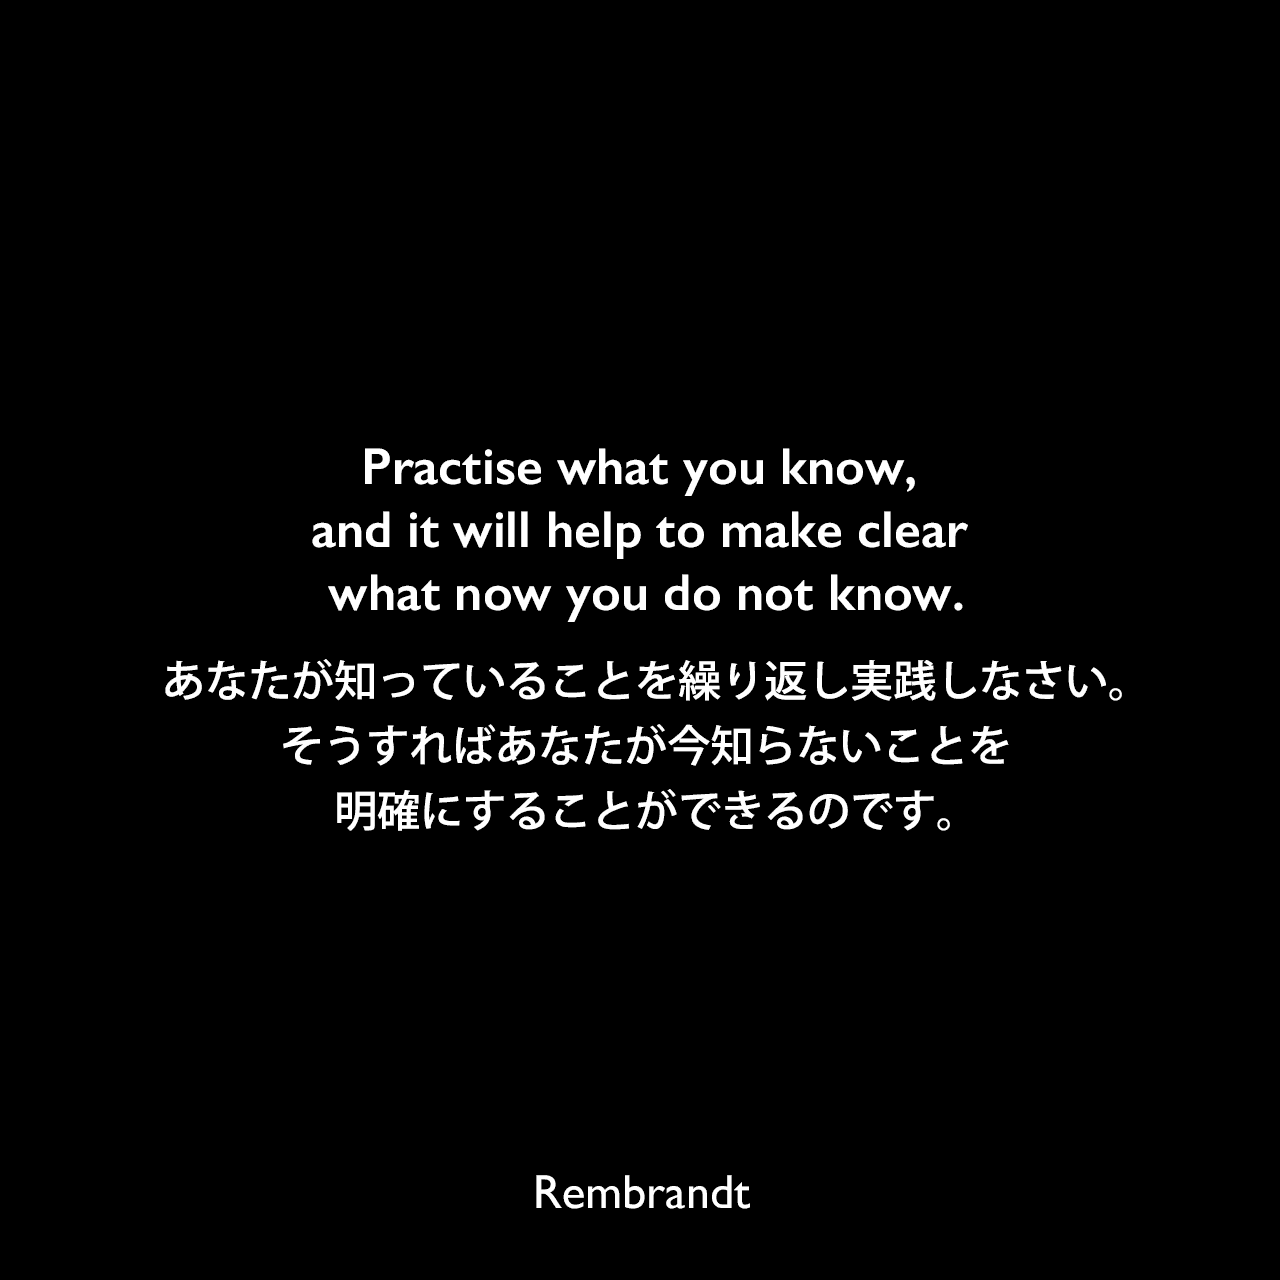 Practise what you know, and it will help to make clear what now you do not know.あなたが知っていることを繰り返し実践しなさい。そうすればあなたが今知らないことを明確にすることができるのです。Rembrandt